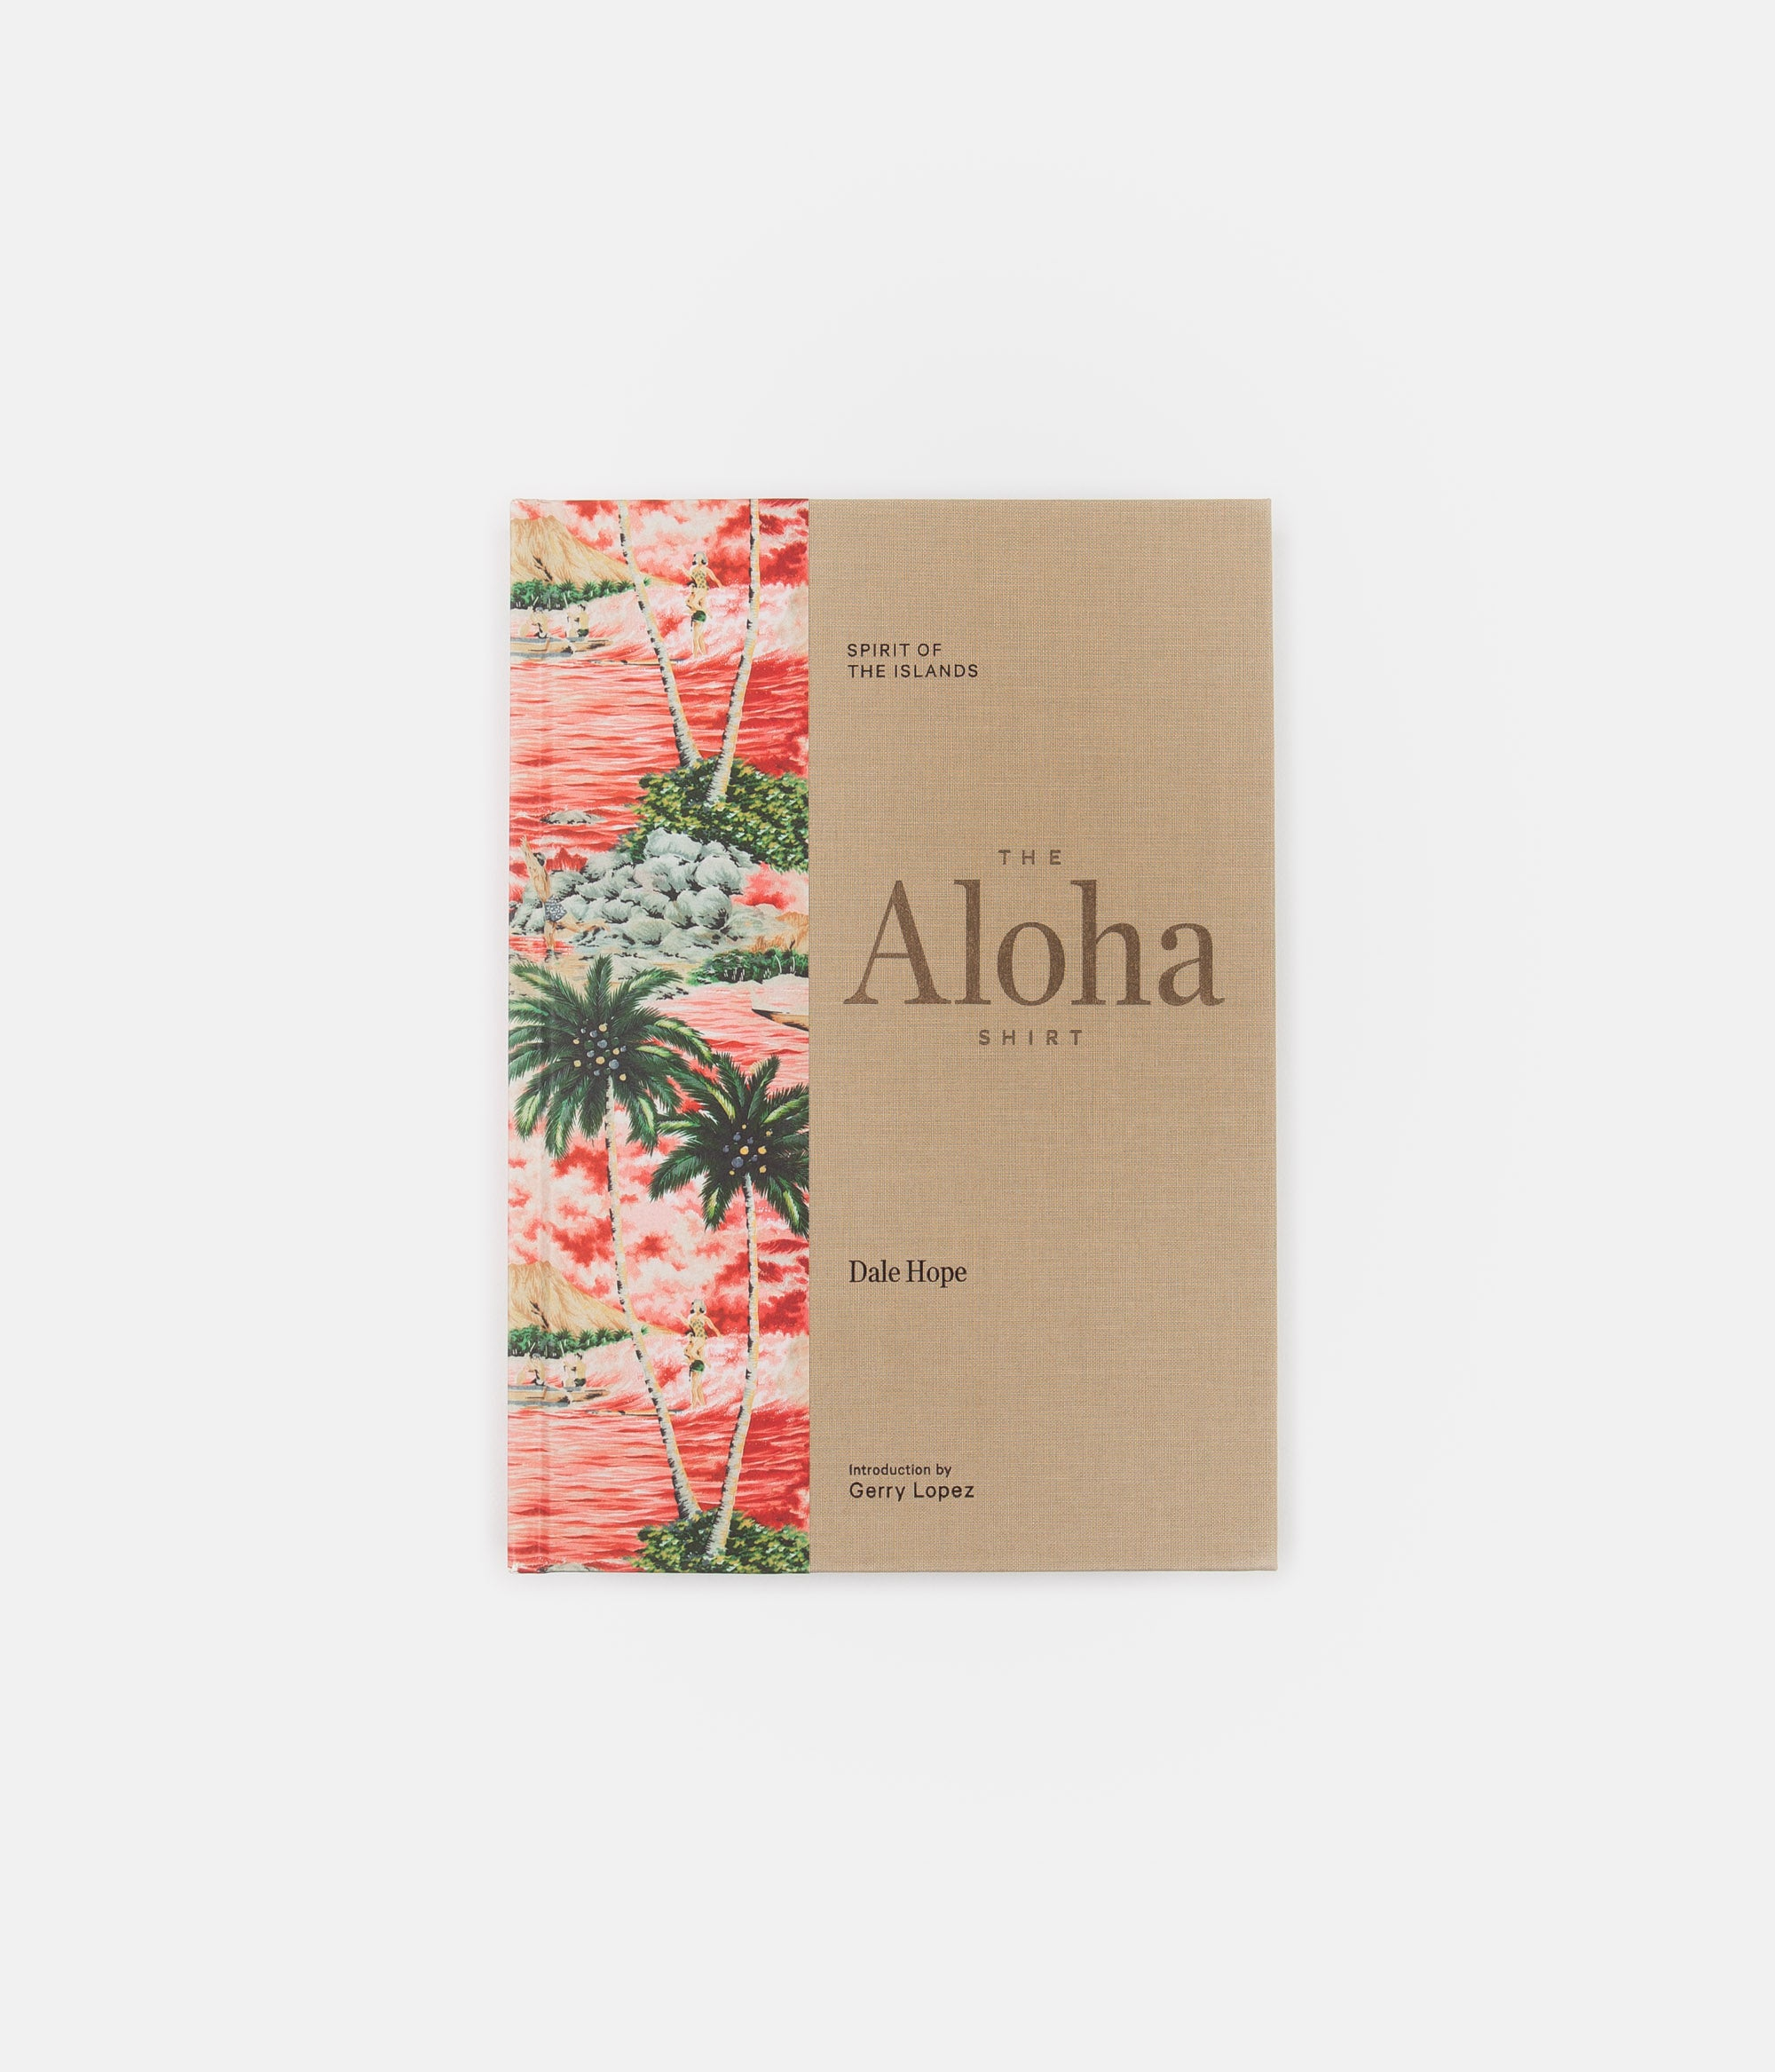 The Aloha Shirt: Spirit of the Islands (Hardcover) - Dale Hope